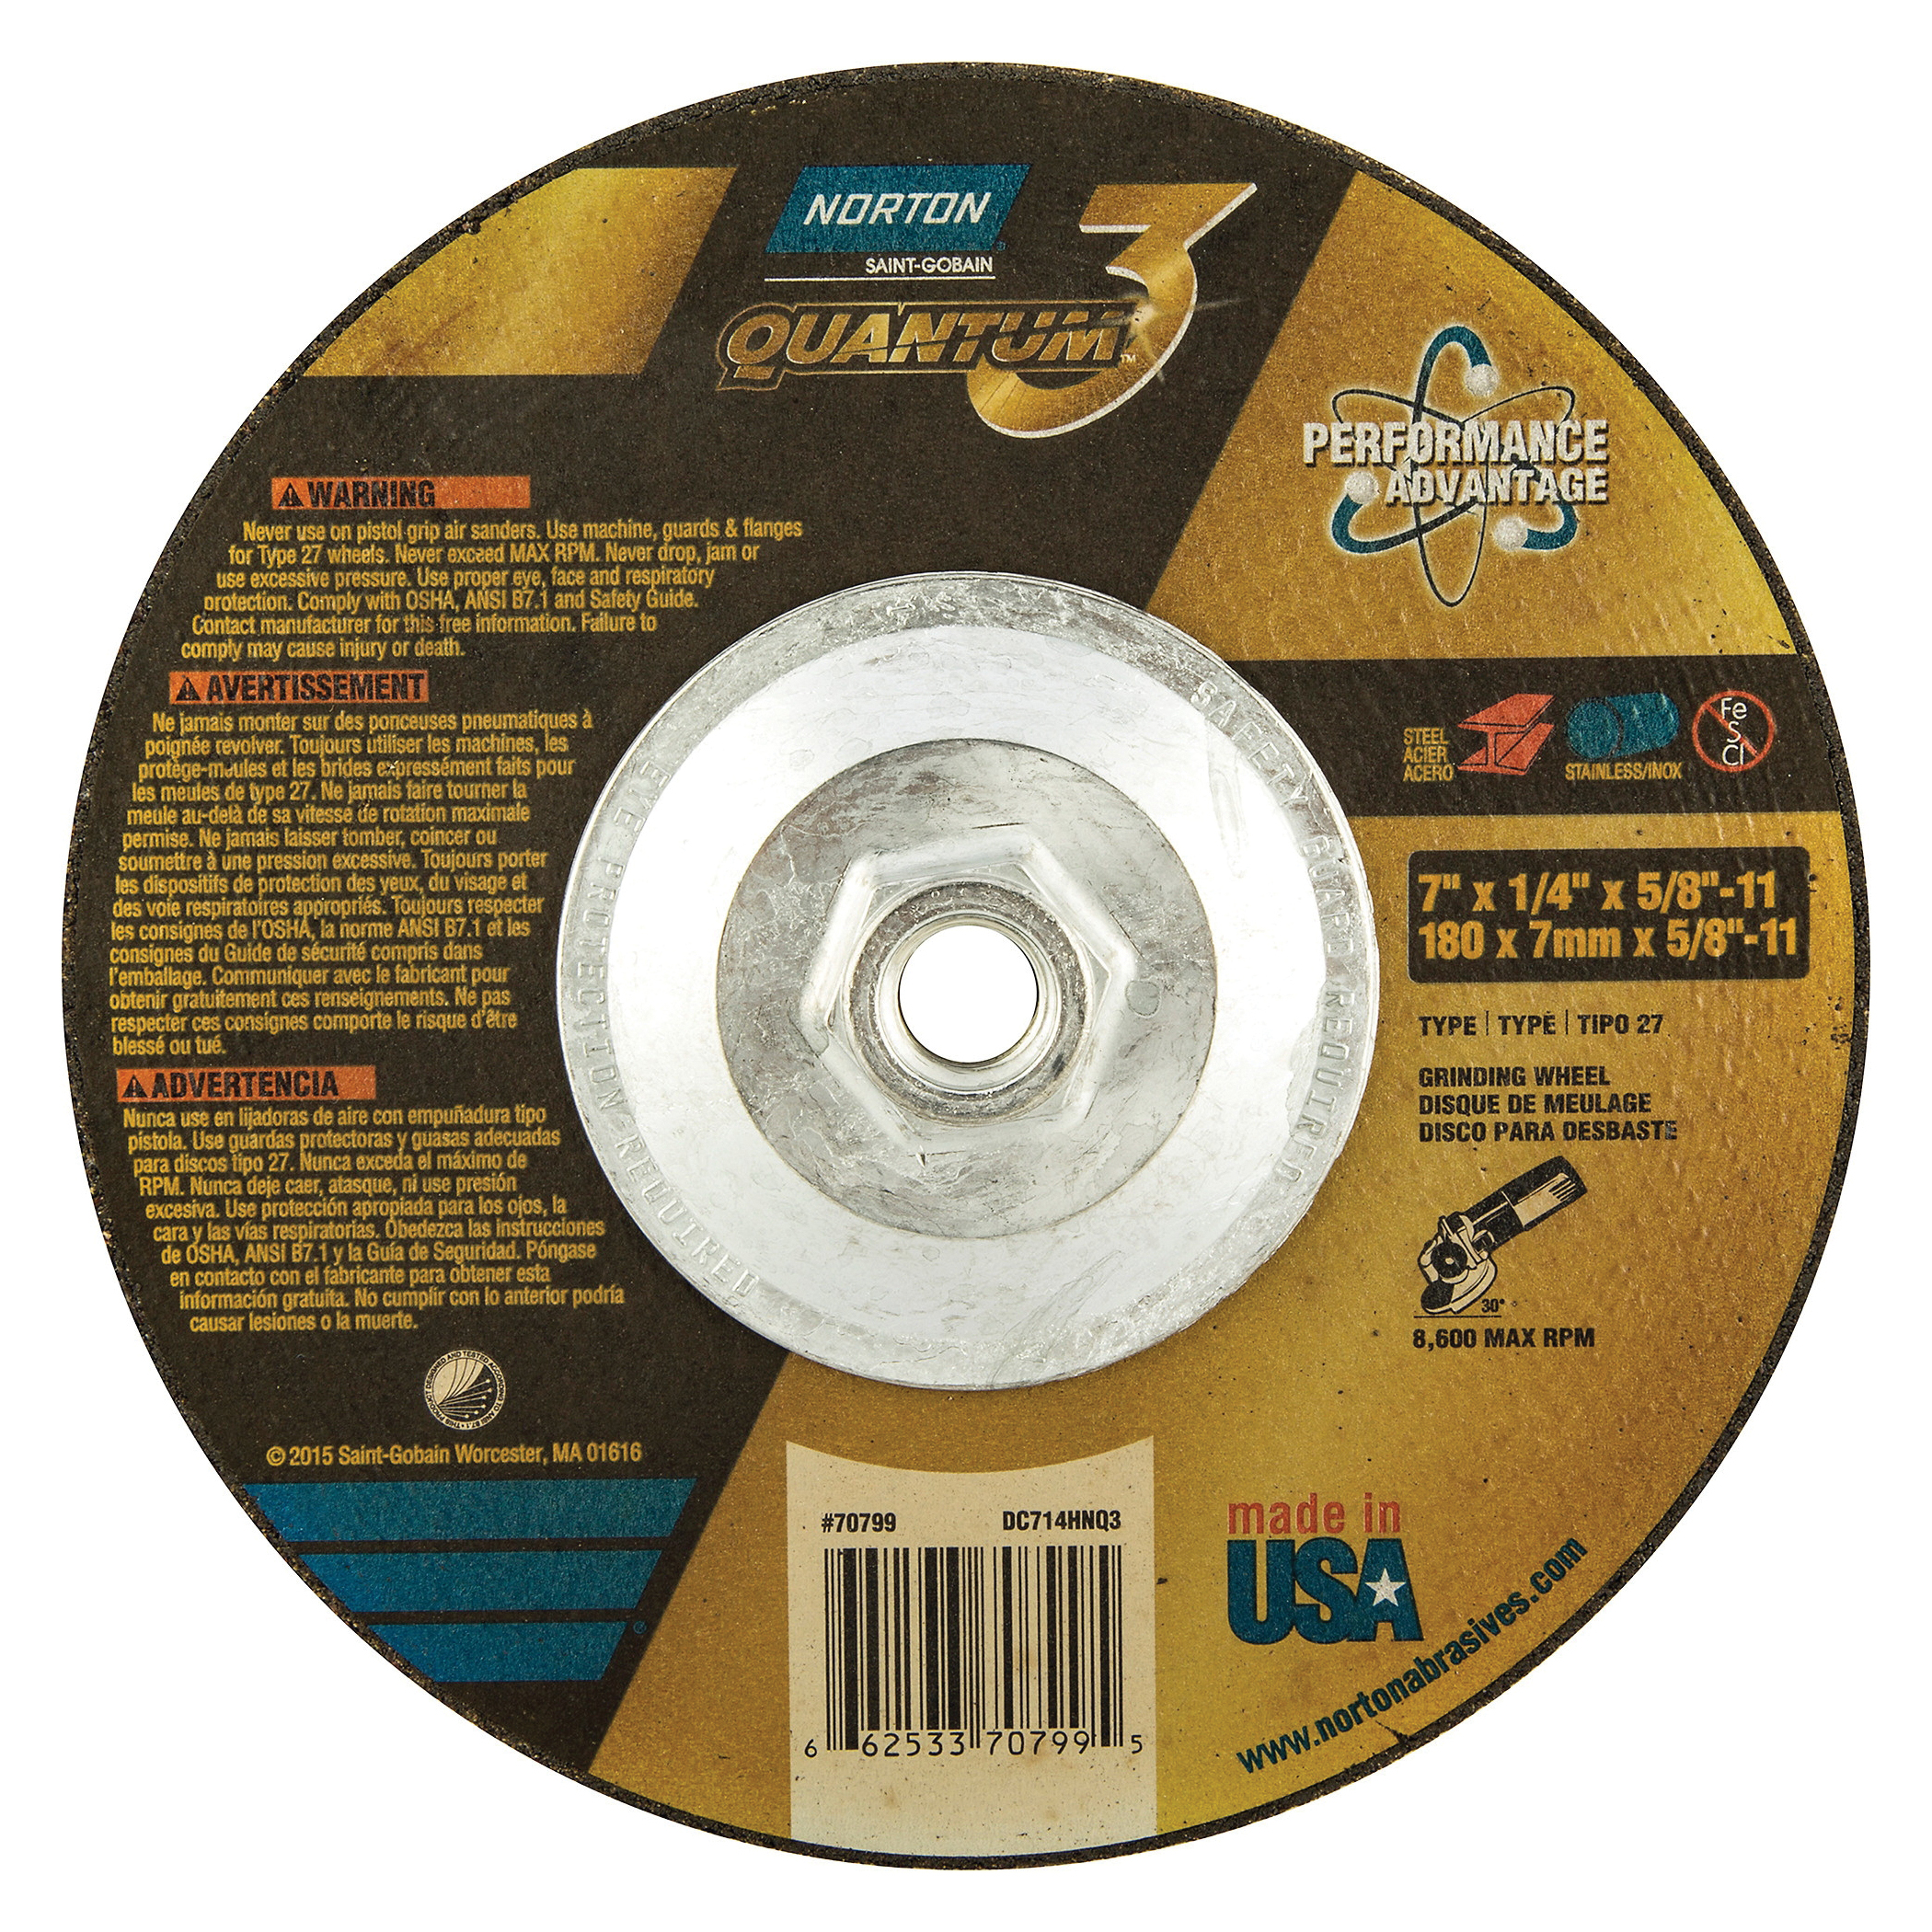 Norton® Quantum™3 66253370799 SG Series Depressed Center Wheel, 7 in Dia x 1/4 in THK, 20 Grit, Ceramic Alumina Abrasive